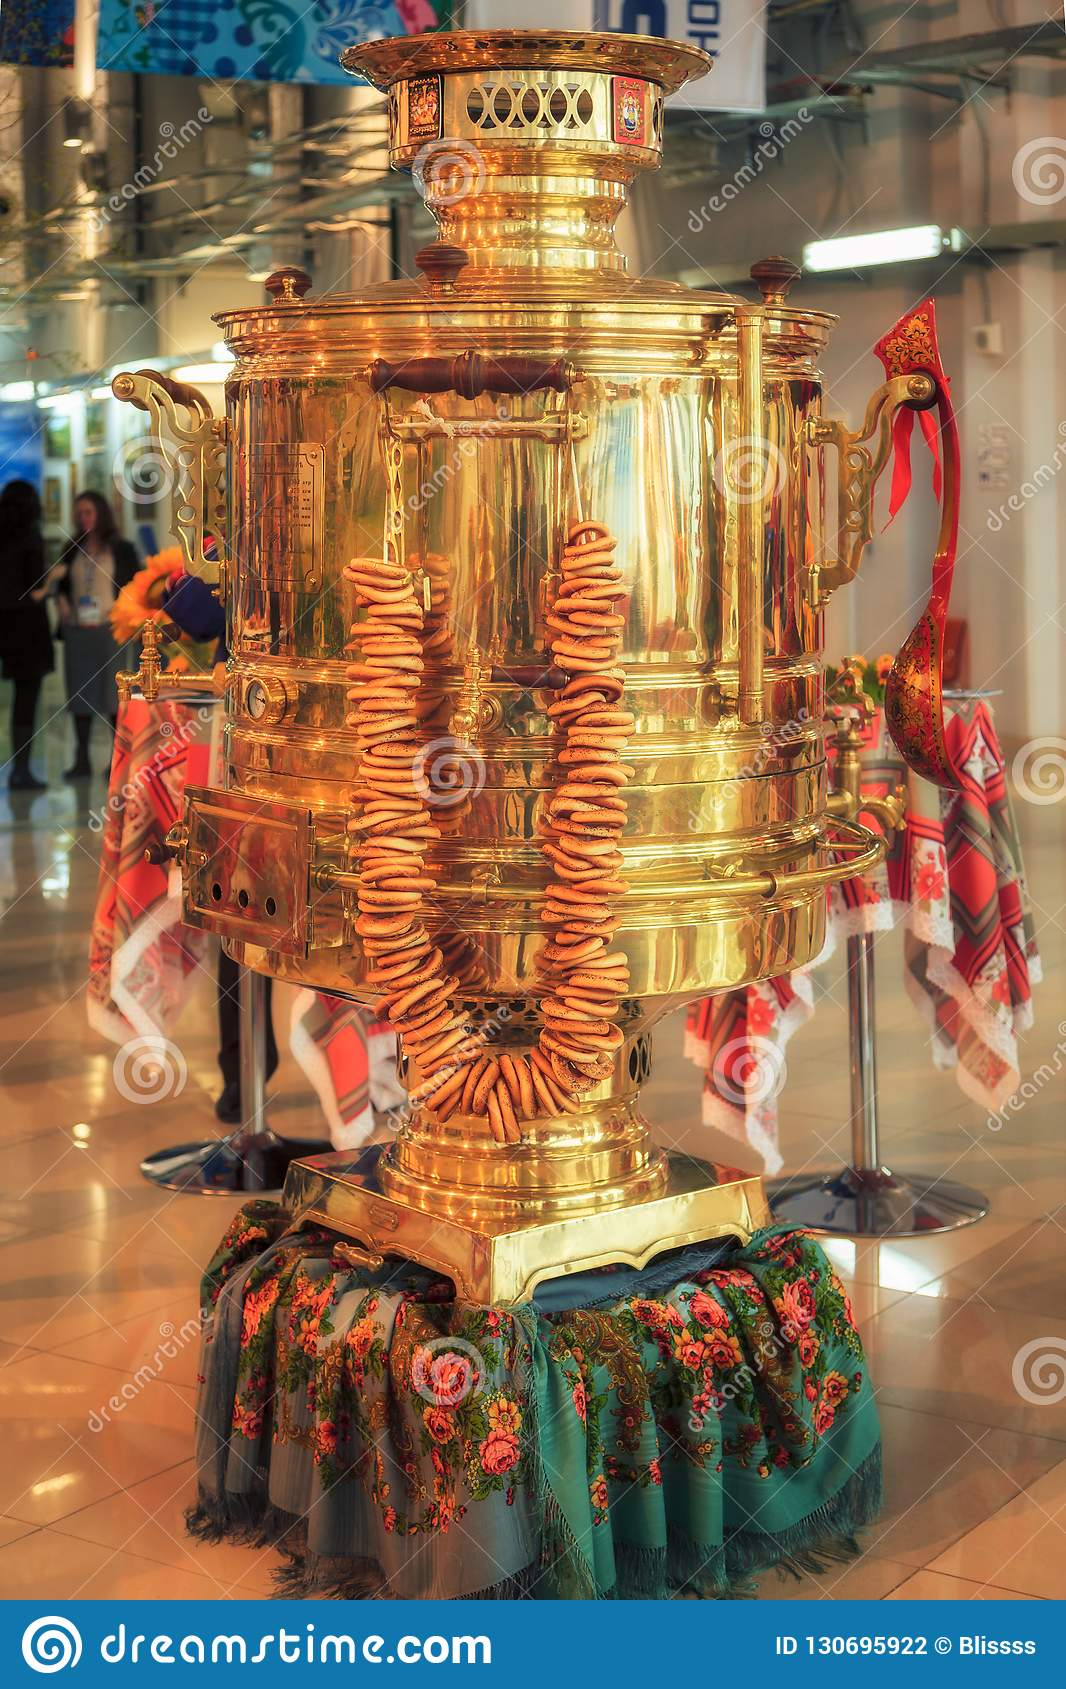 Big shining golden vintage festive Russian samovar with a bunch of bagels set out in the Olympic Mediacenter for quests to admire.